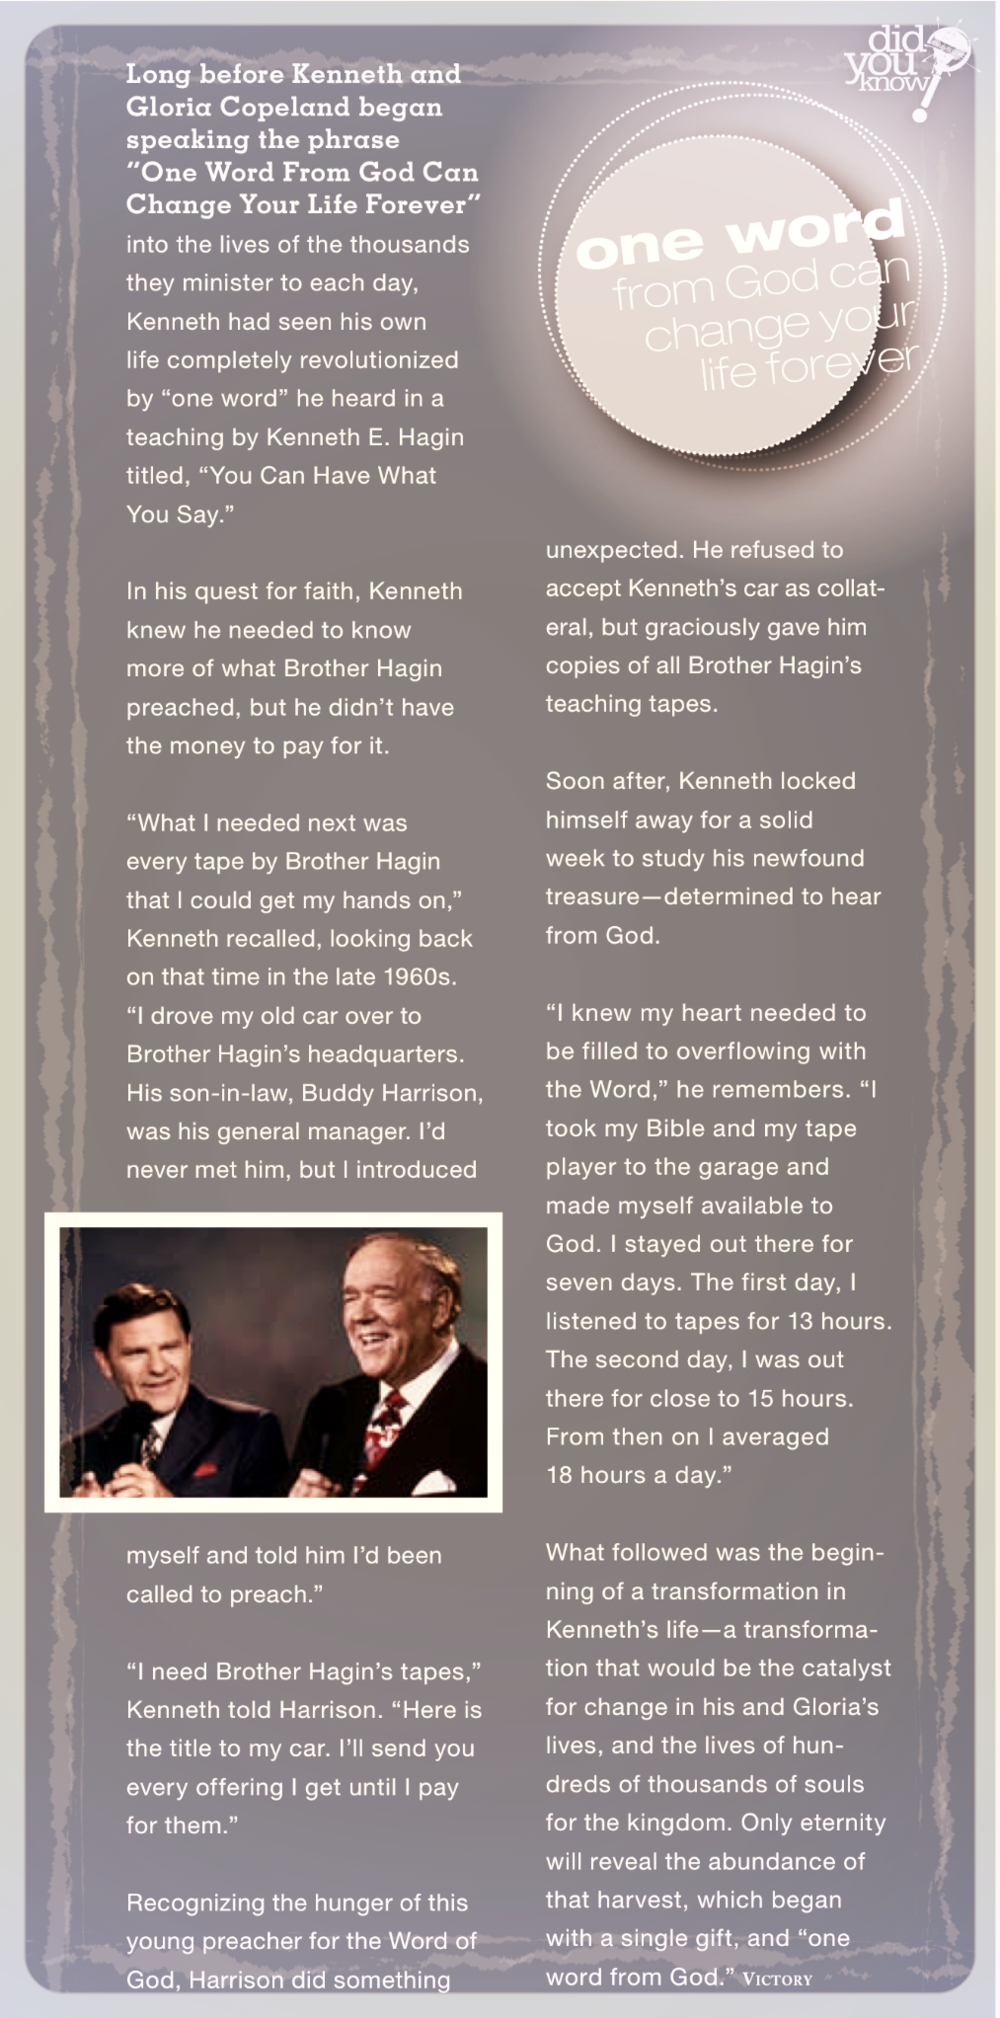 """This is from Kenneth Copeland's """"Voice of Victory"""" Magazine"""